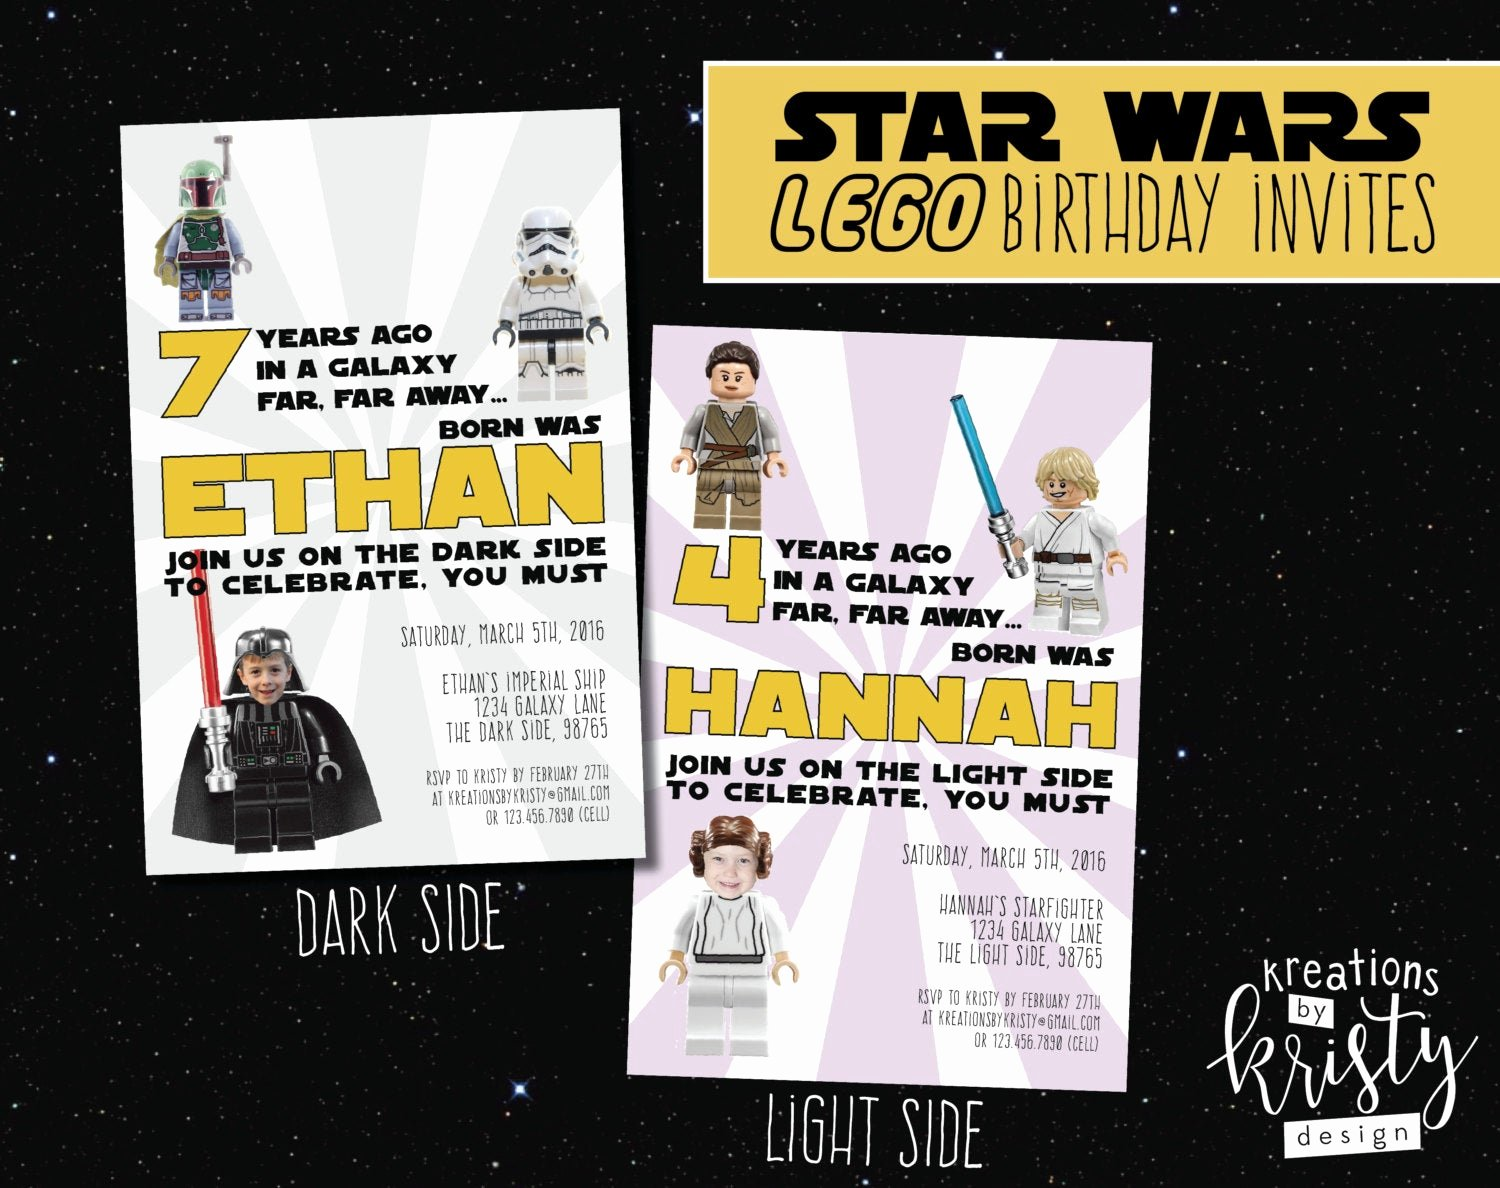 Lego Star Wars Birthday Invitations Unique Star Wars Lego themed Birthday Party Photo Invitation